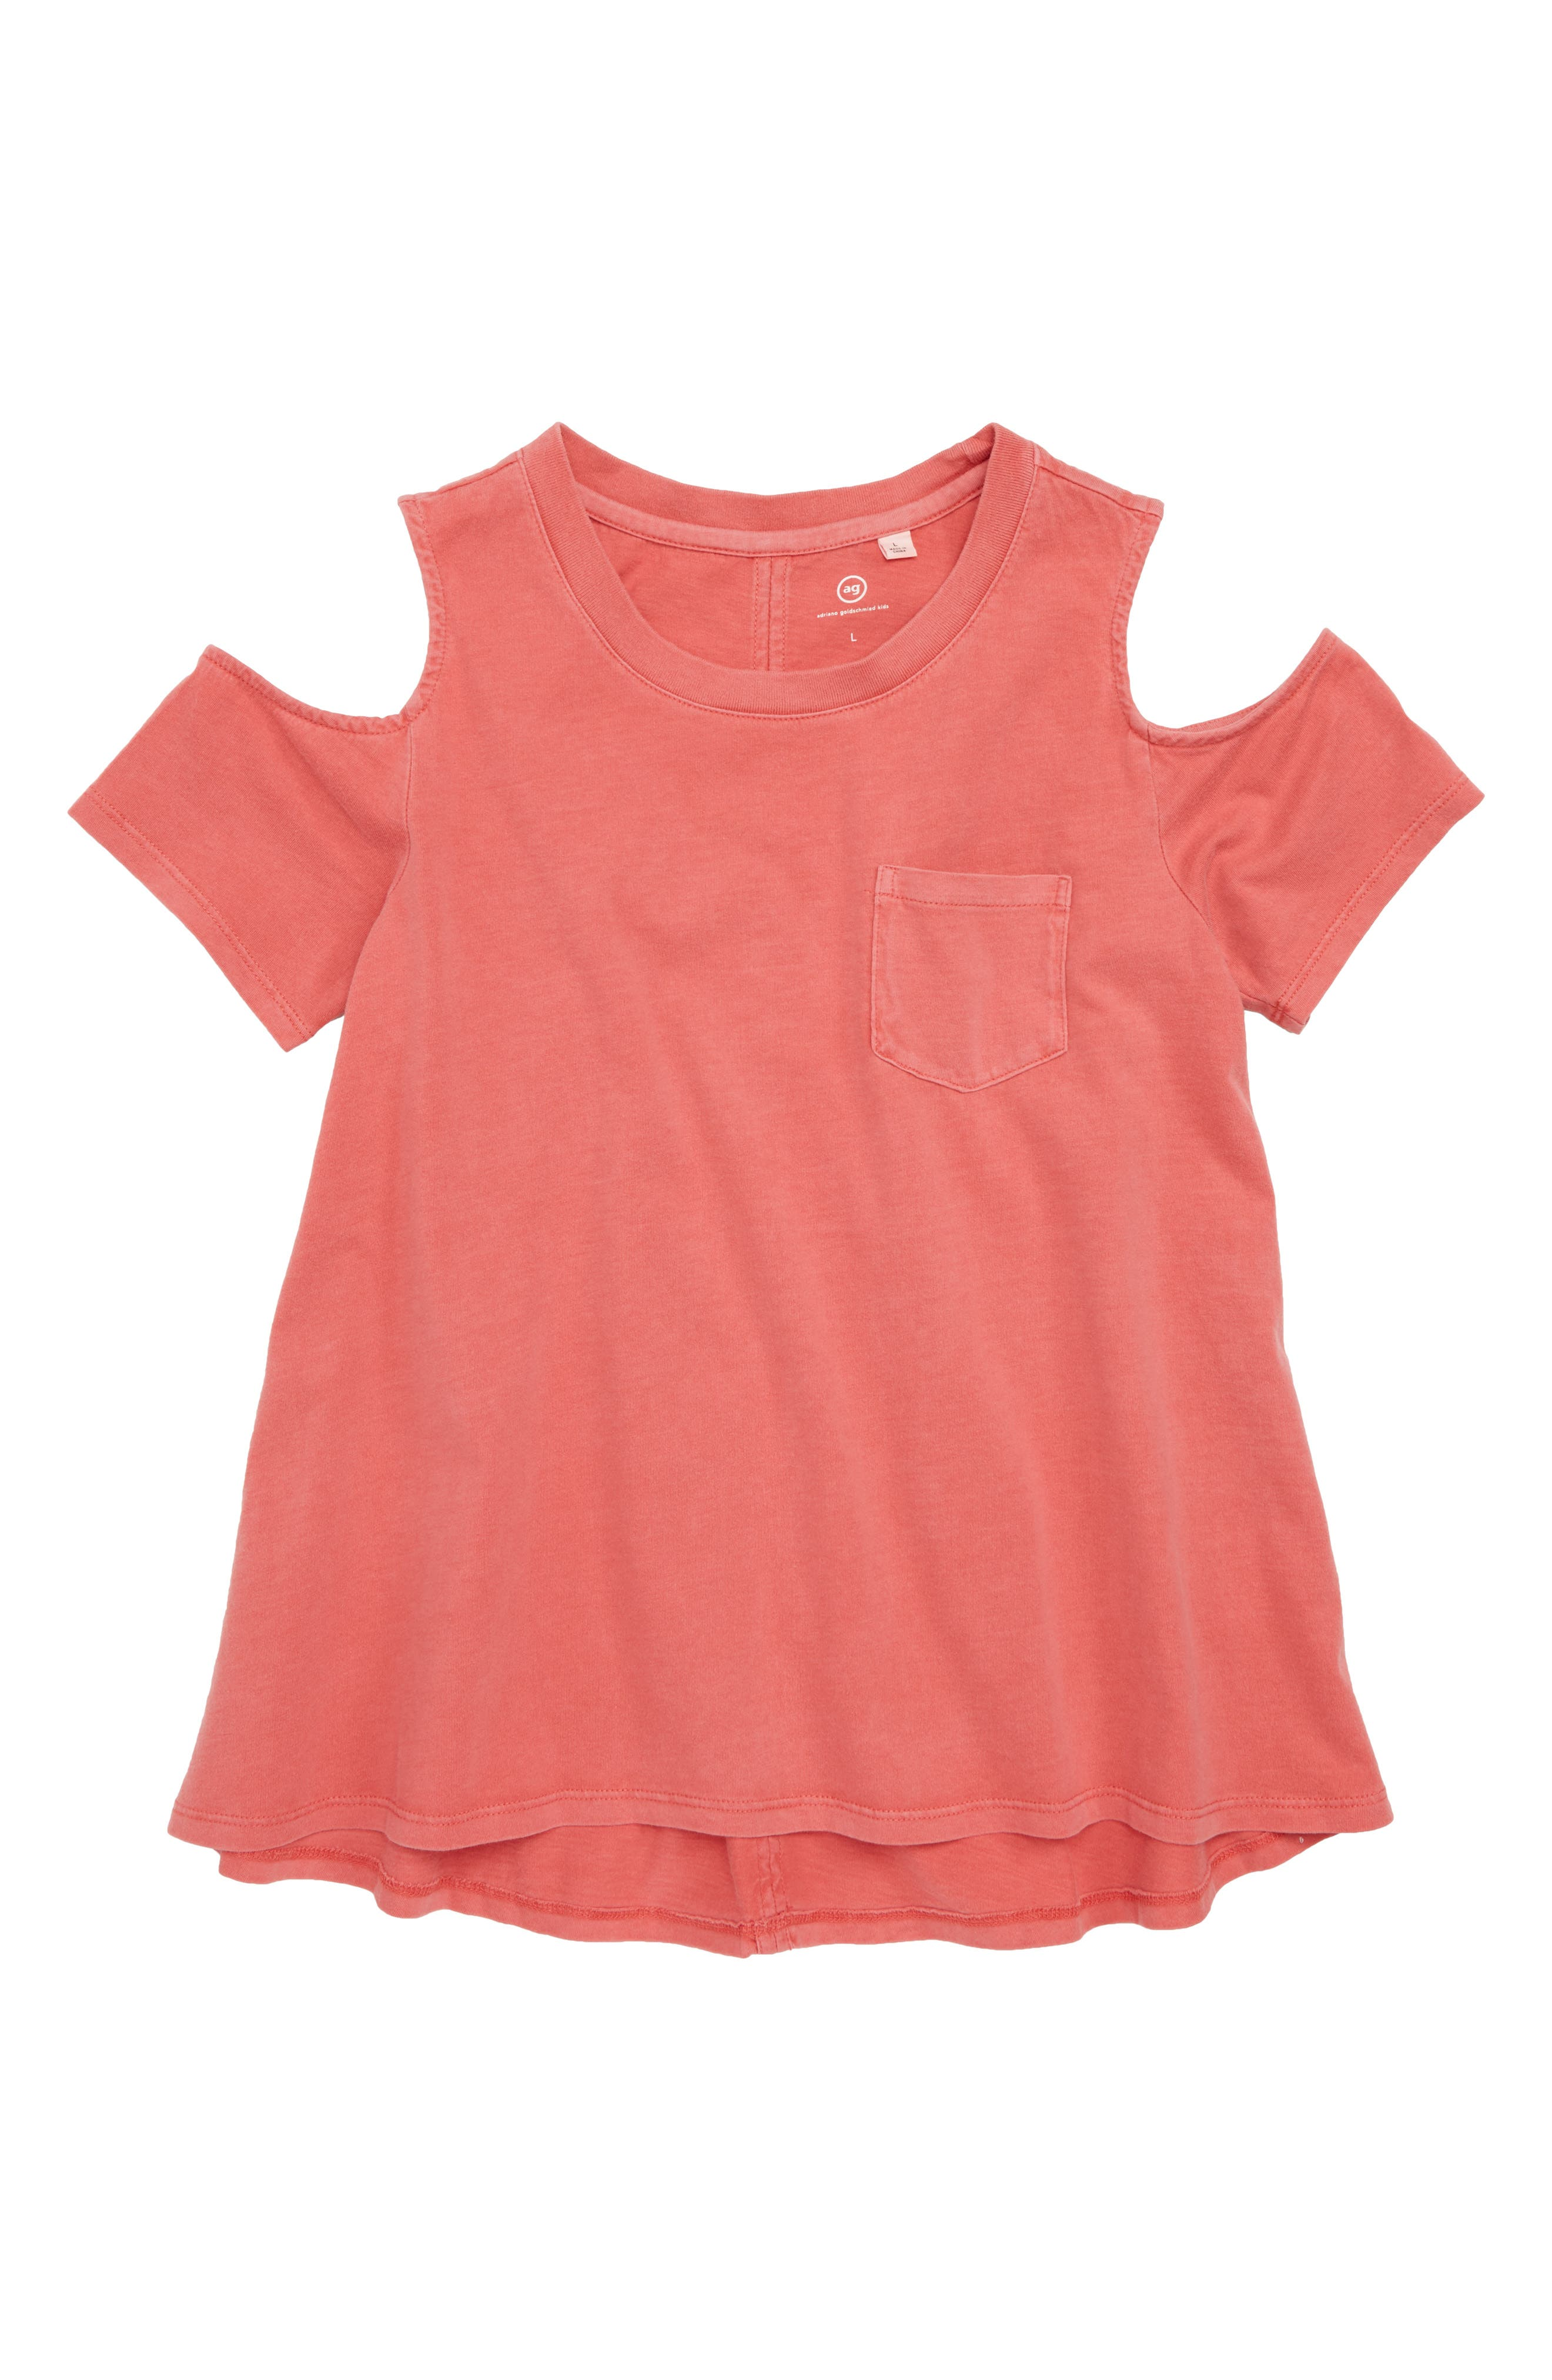 adriano goldschmied kids Tess Cold Shoulder Top,                             Main thumbnail 1, color,                             Flame